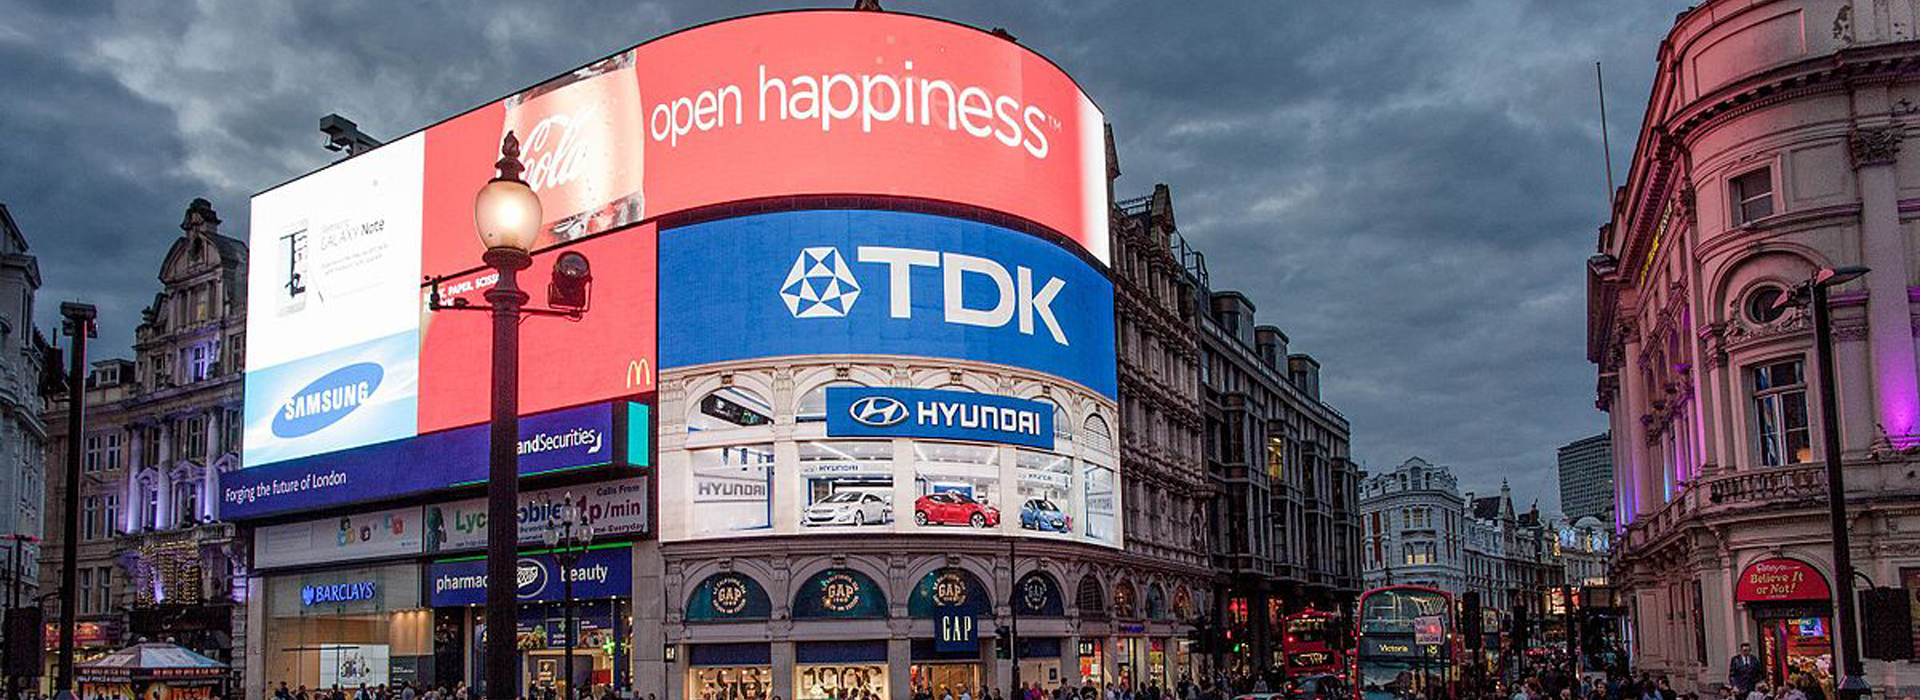 Open_Happiness_Piccadilly_Circus_Blue-Pink_Hour_120917-1126-jikatu